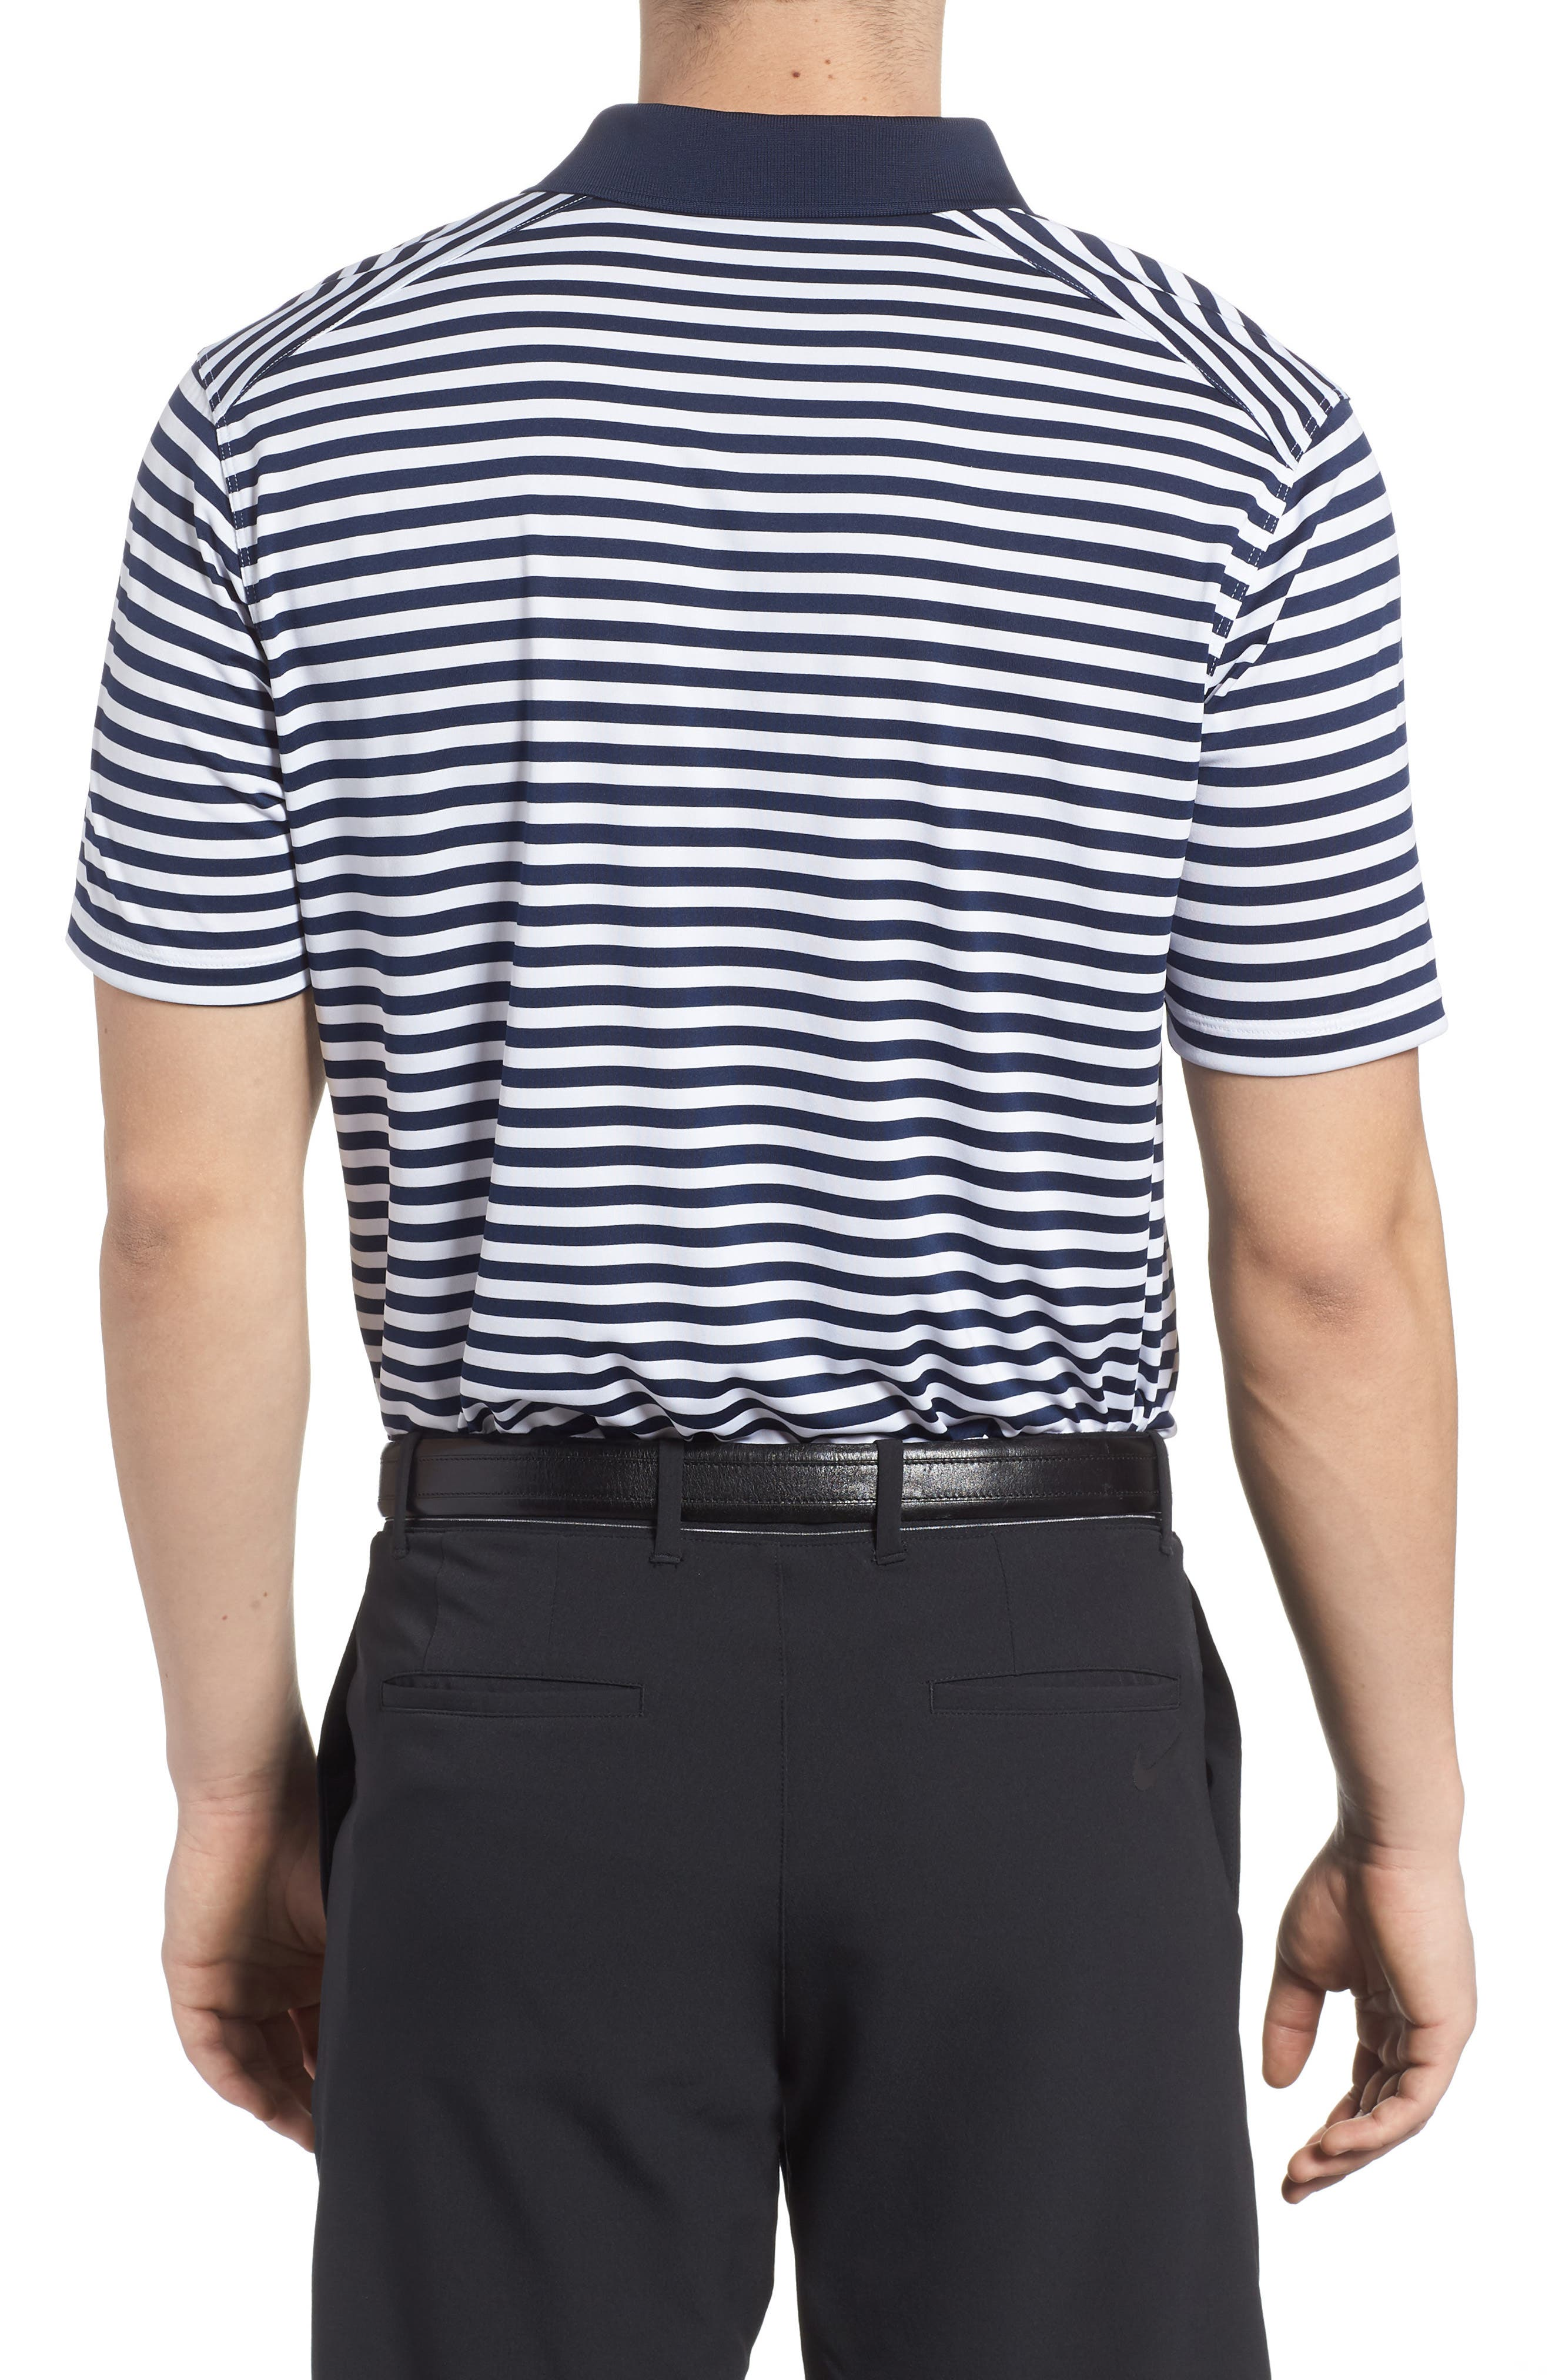 Dry Victory Stripe Golf Polo,                             Alternate thumbnail 2, color,                             College Navy/ White/ Black